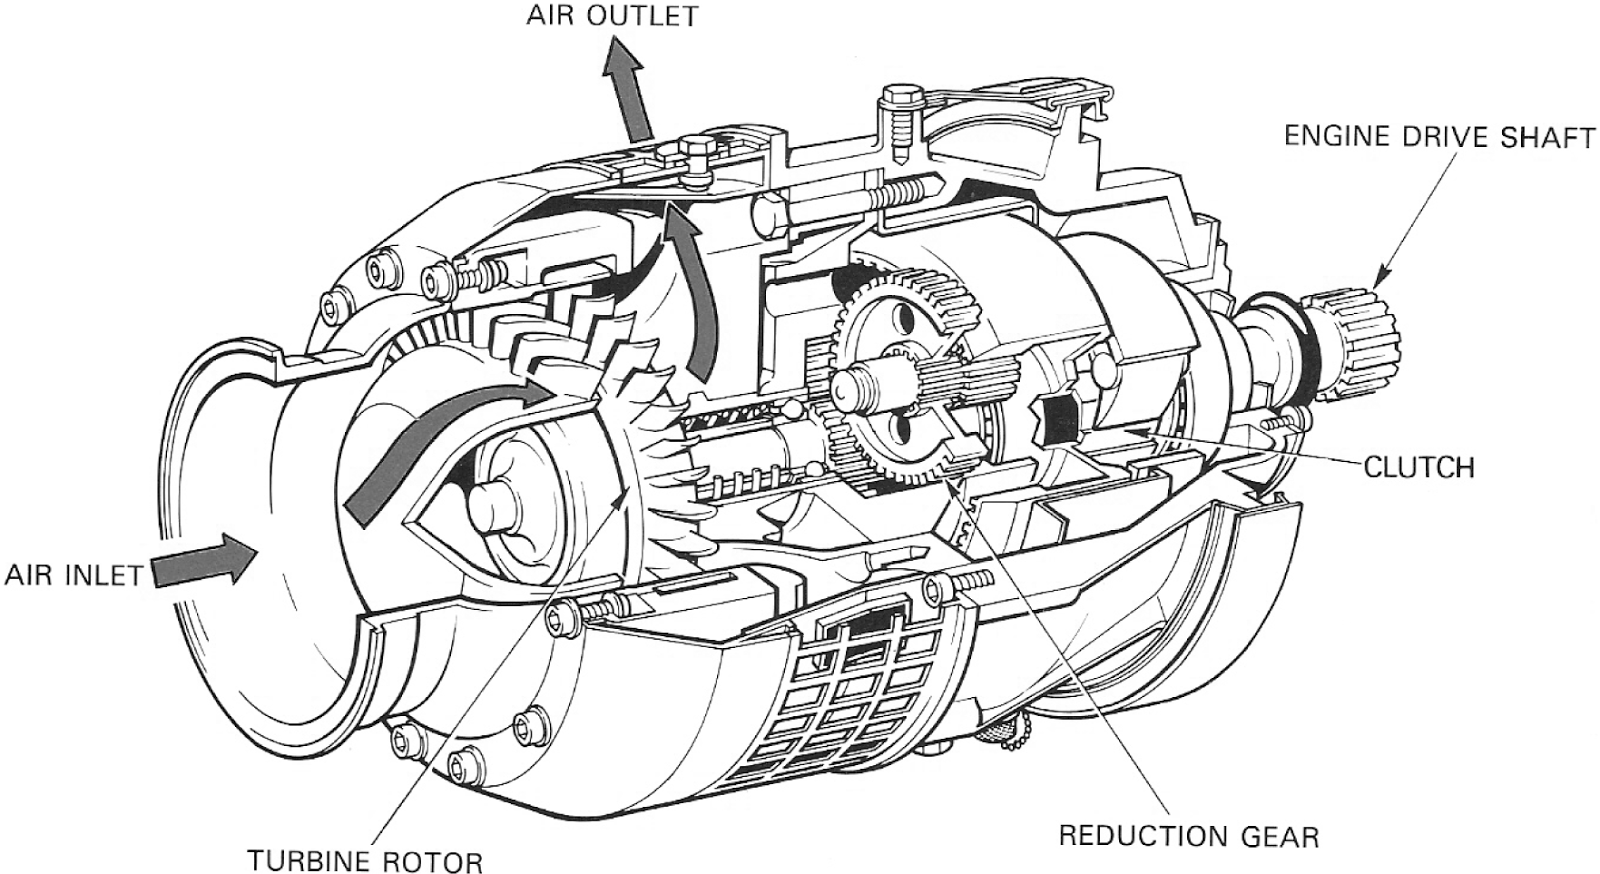 T700 Engine Cutaway Wiring Diagram And Fuse Box  T700 Engine Parts, T700, Free Engine Image For User Manual